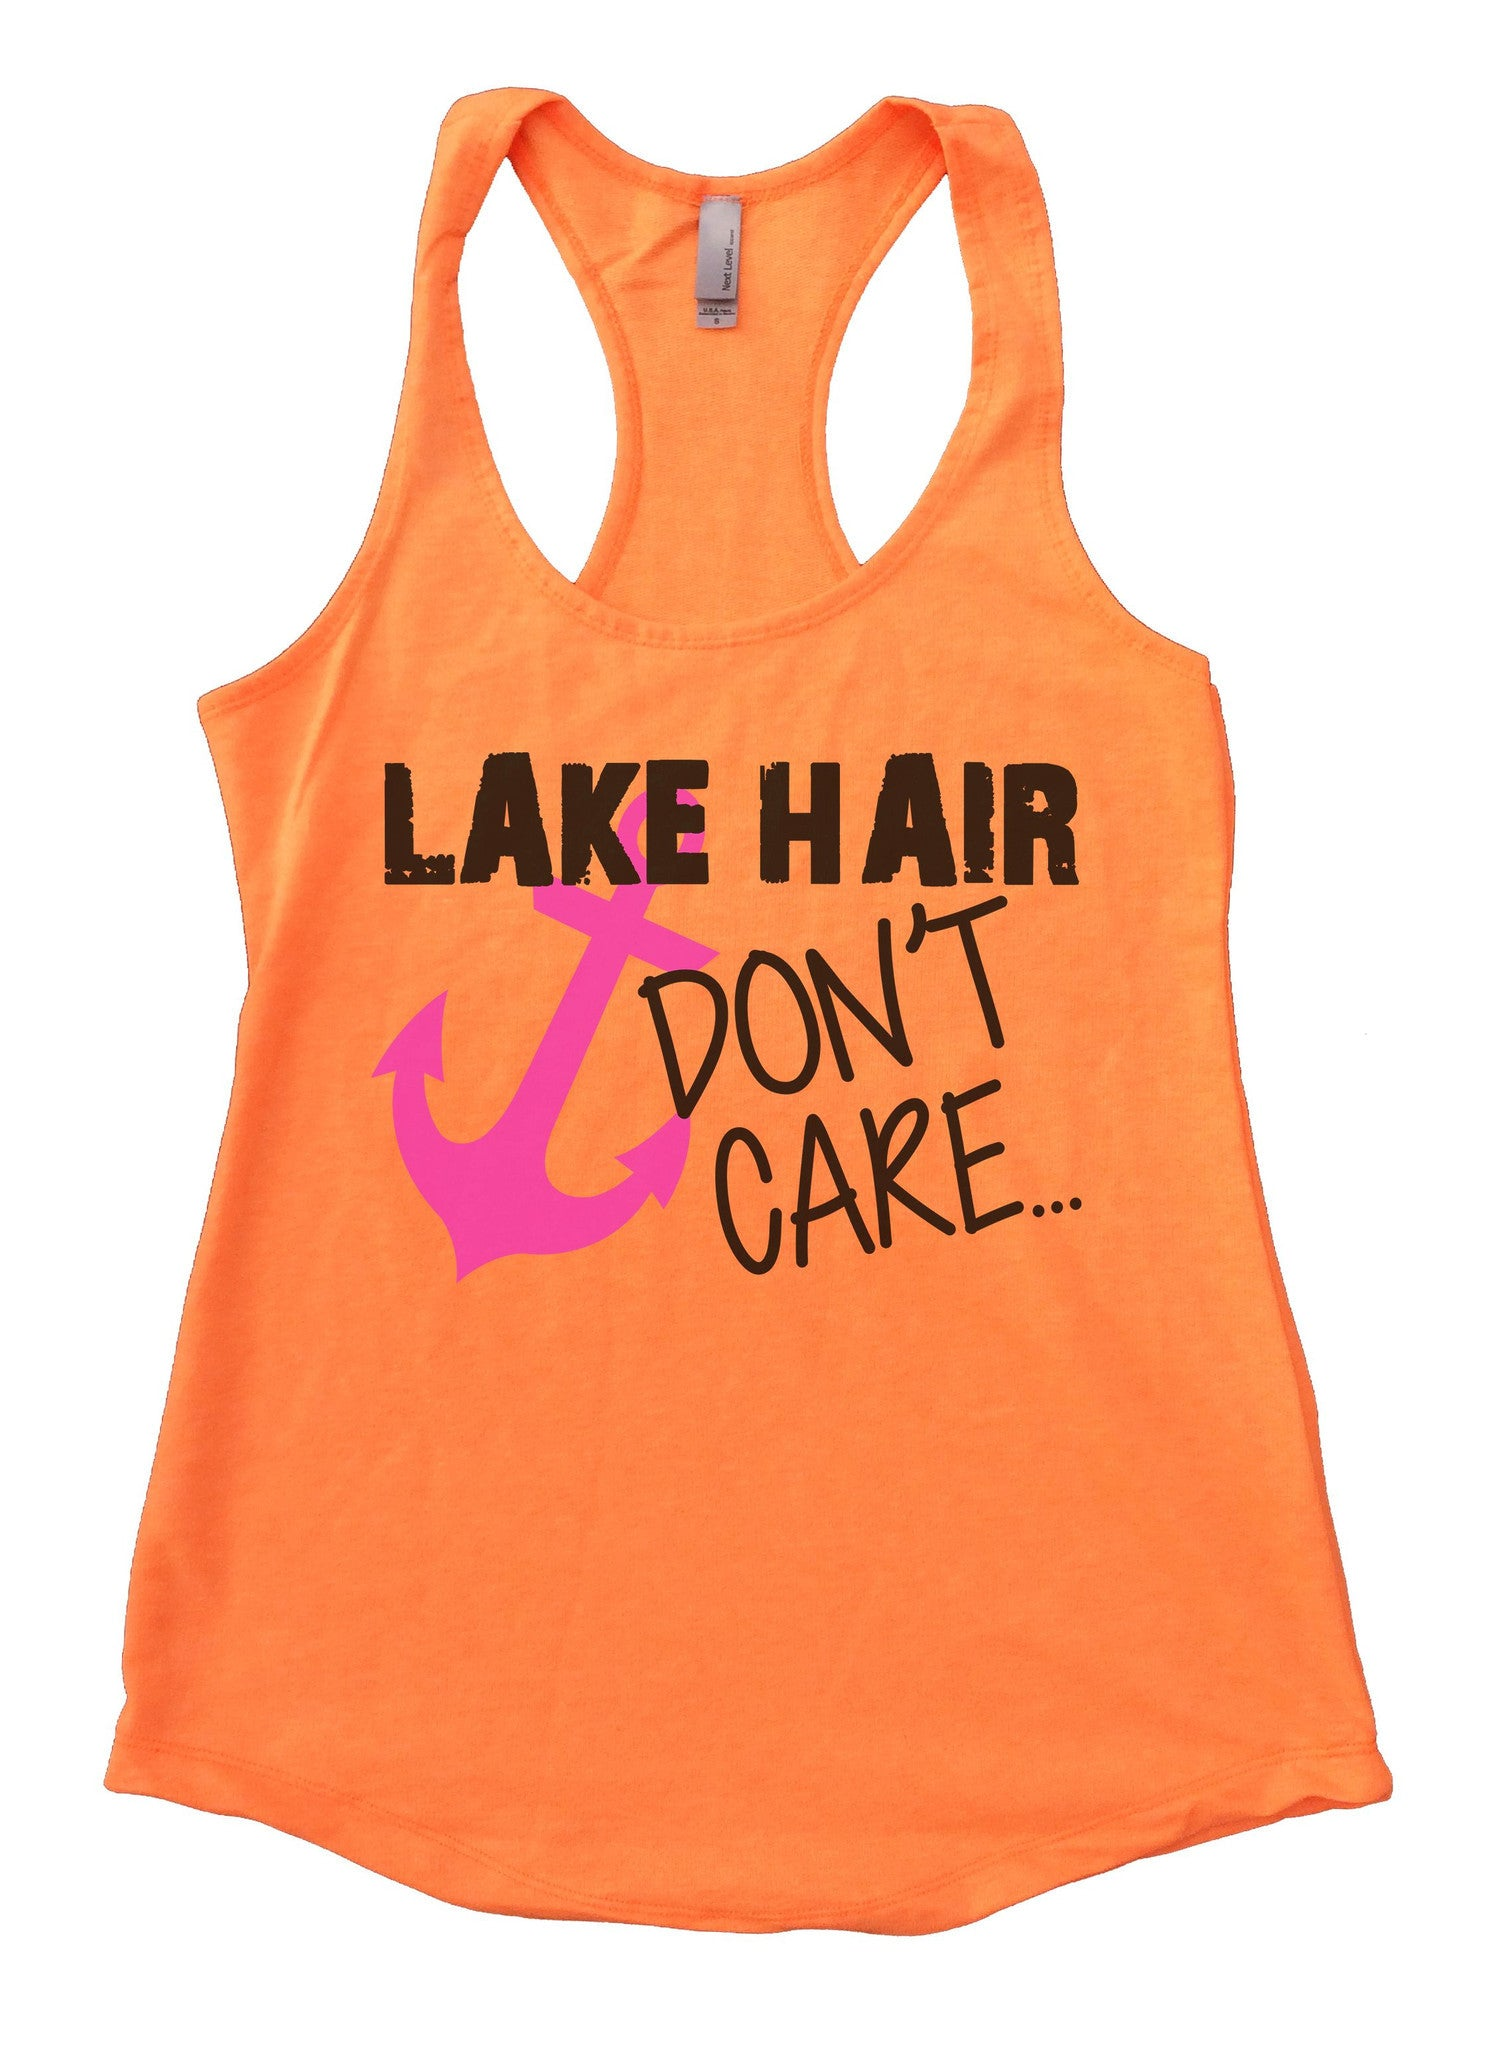 Lake Hair Dont't Care Womens Workout Tank Top F693 - Funny Shirts Tank Tops Burnouts and Triblends  - 4